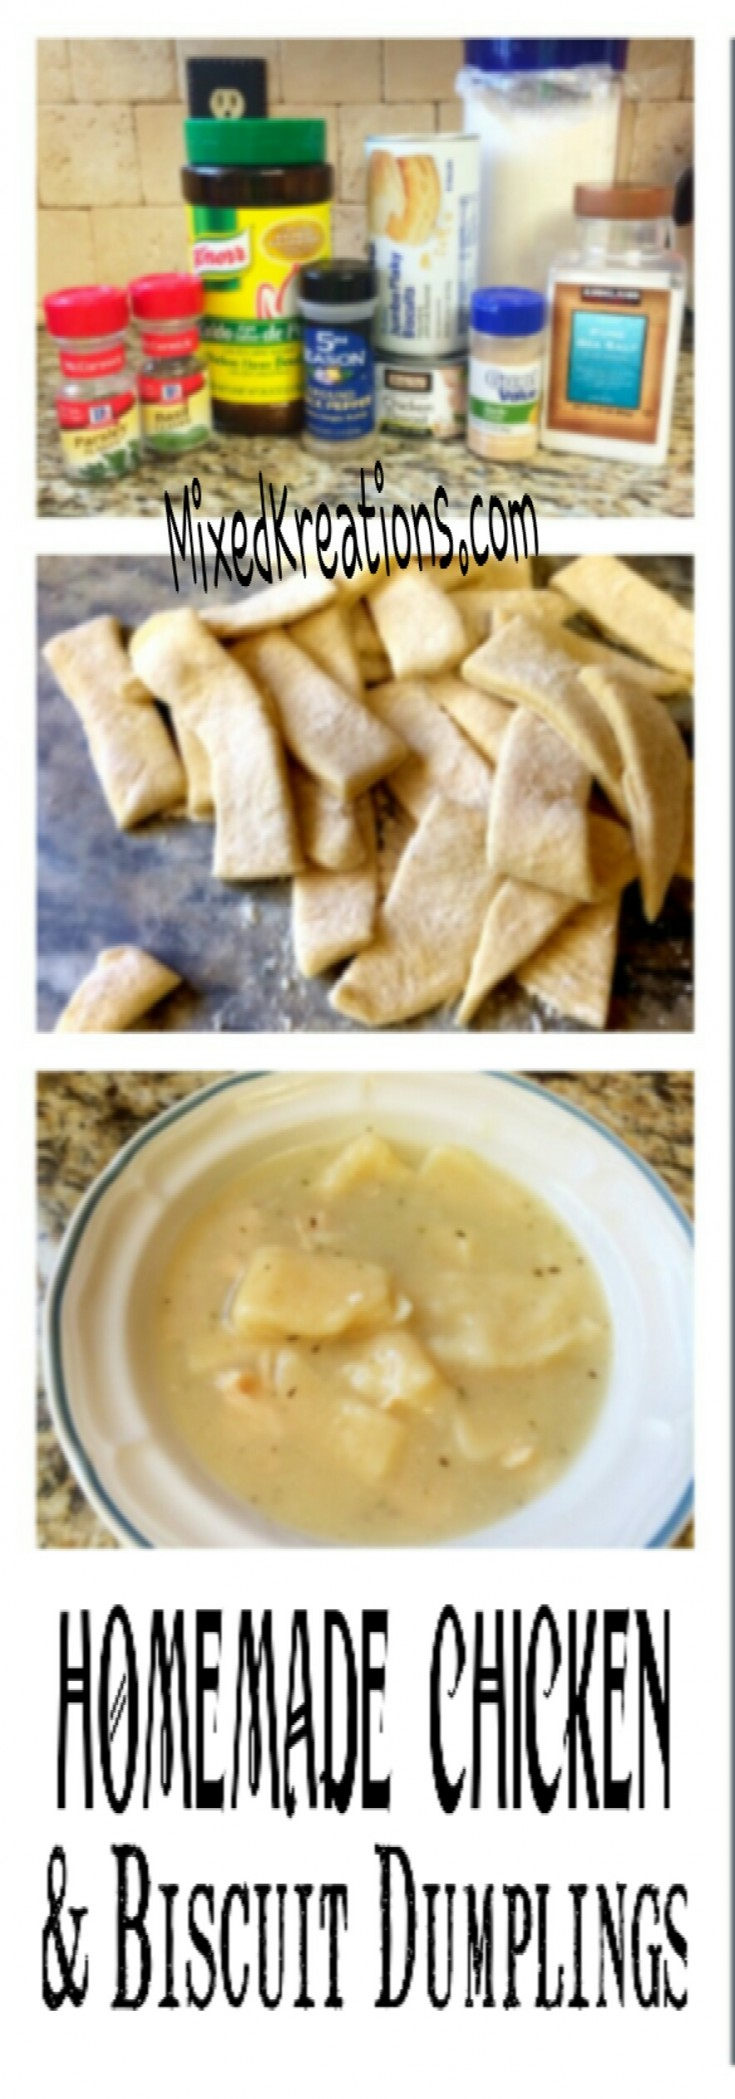 Easy Homemade Chicken and biscuit dumplings